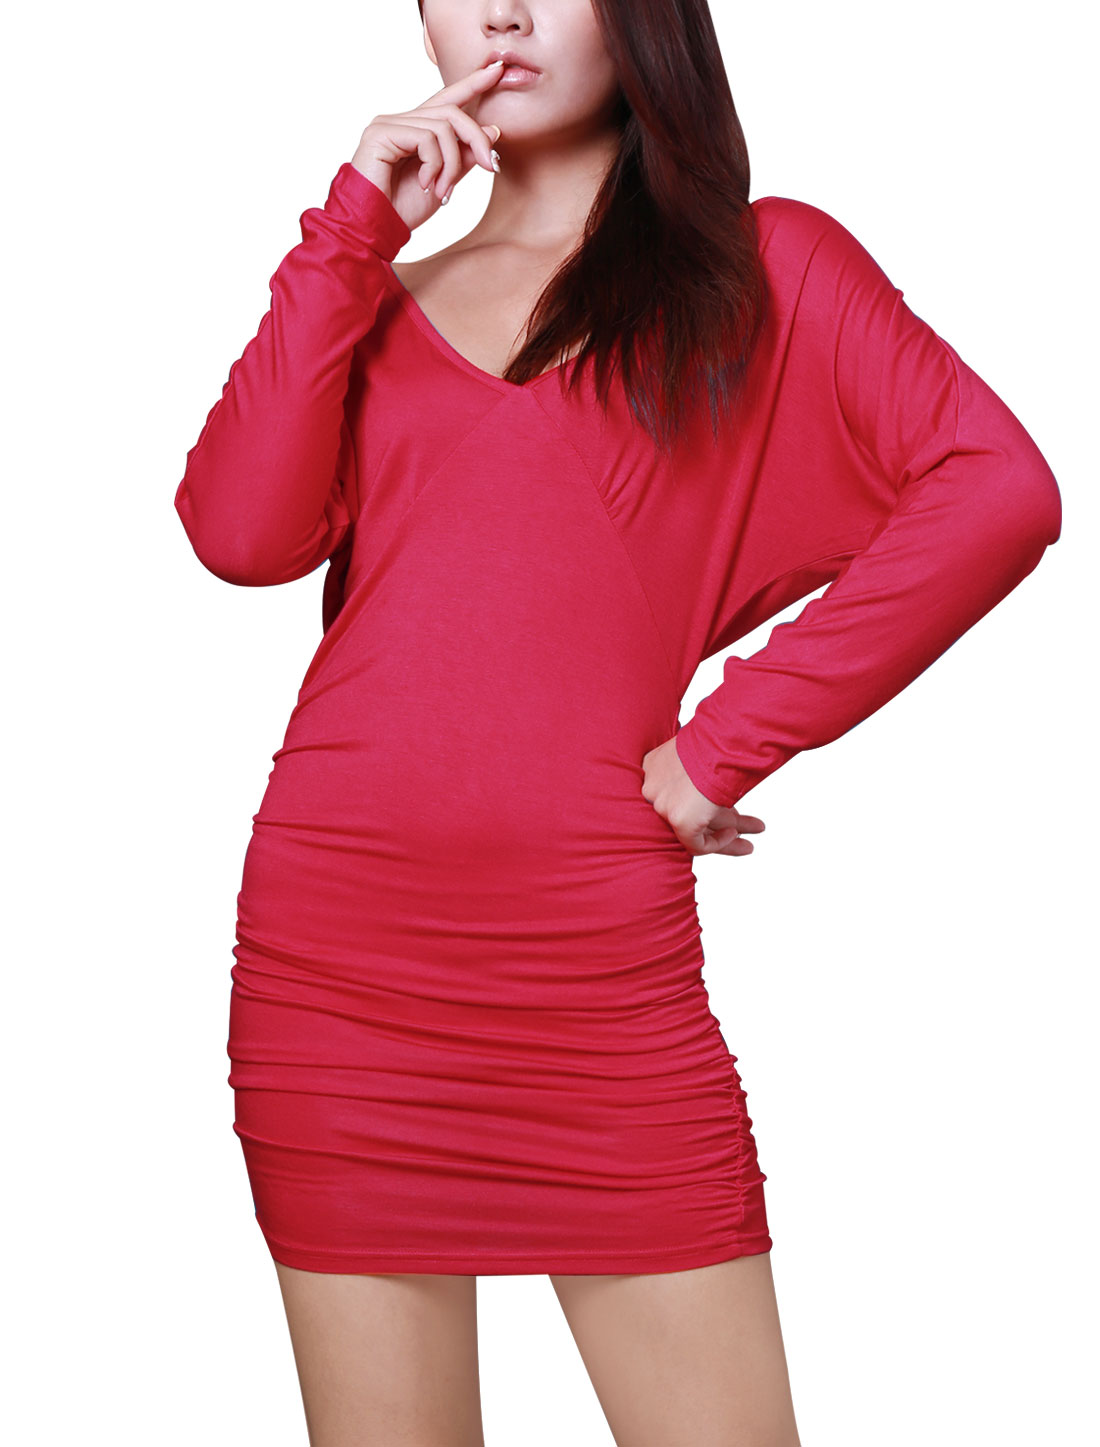 Elastic Side Stretchy Slim Fit Red Mini Dress for Lady XL